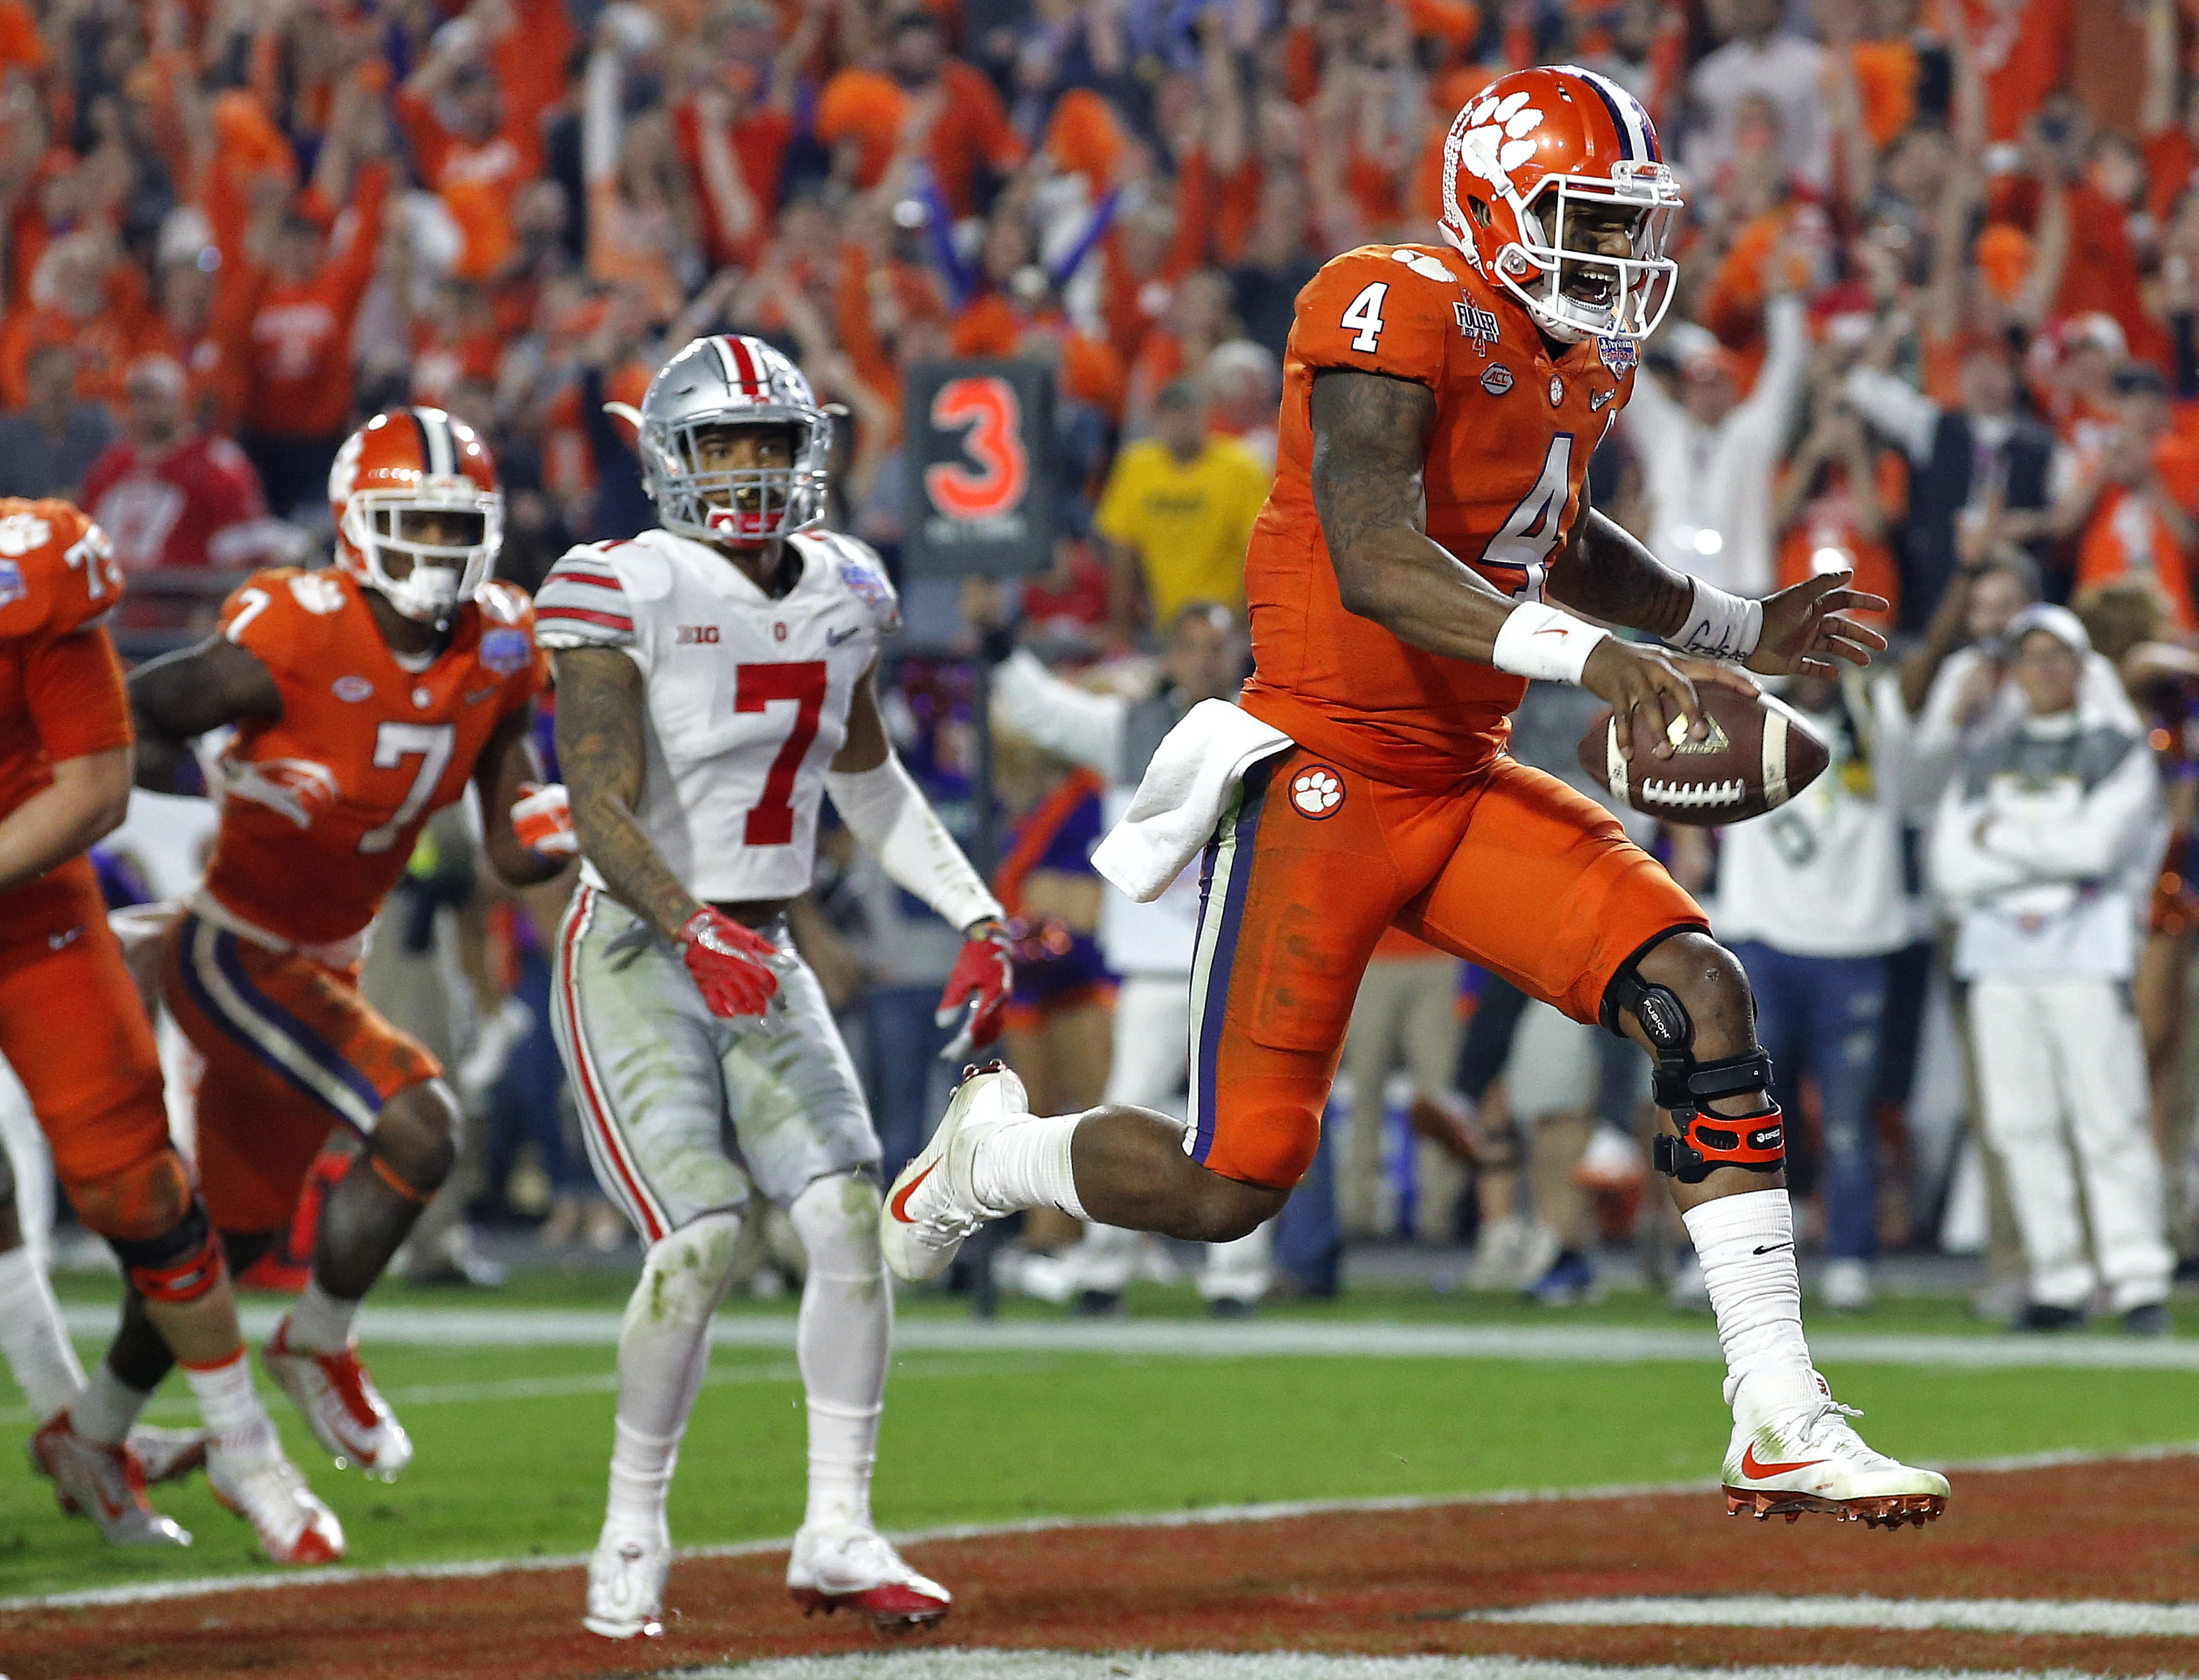 Clemson quarterback Deshaun Watson (4) runs in for a touchdown as Ohio State safety Damon Webb (7) watches during the second half of the Fiesta Bowl NCAA college football game, Saturday, Dec. 31, 2016, in Glendale, Ariz. (AP Photo/Ross D. Franklin)